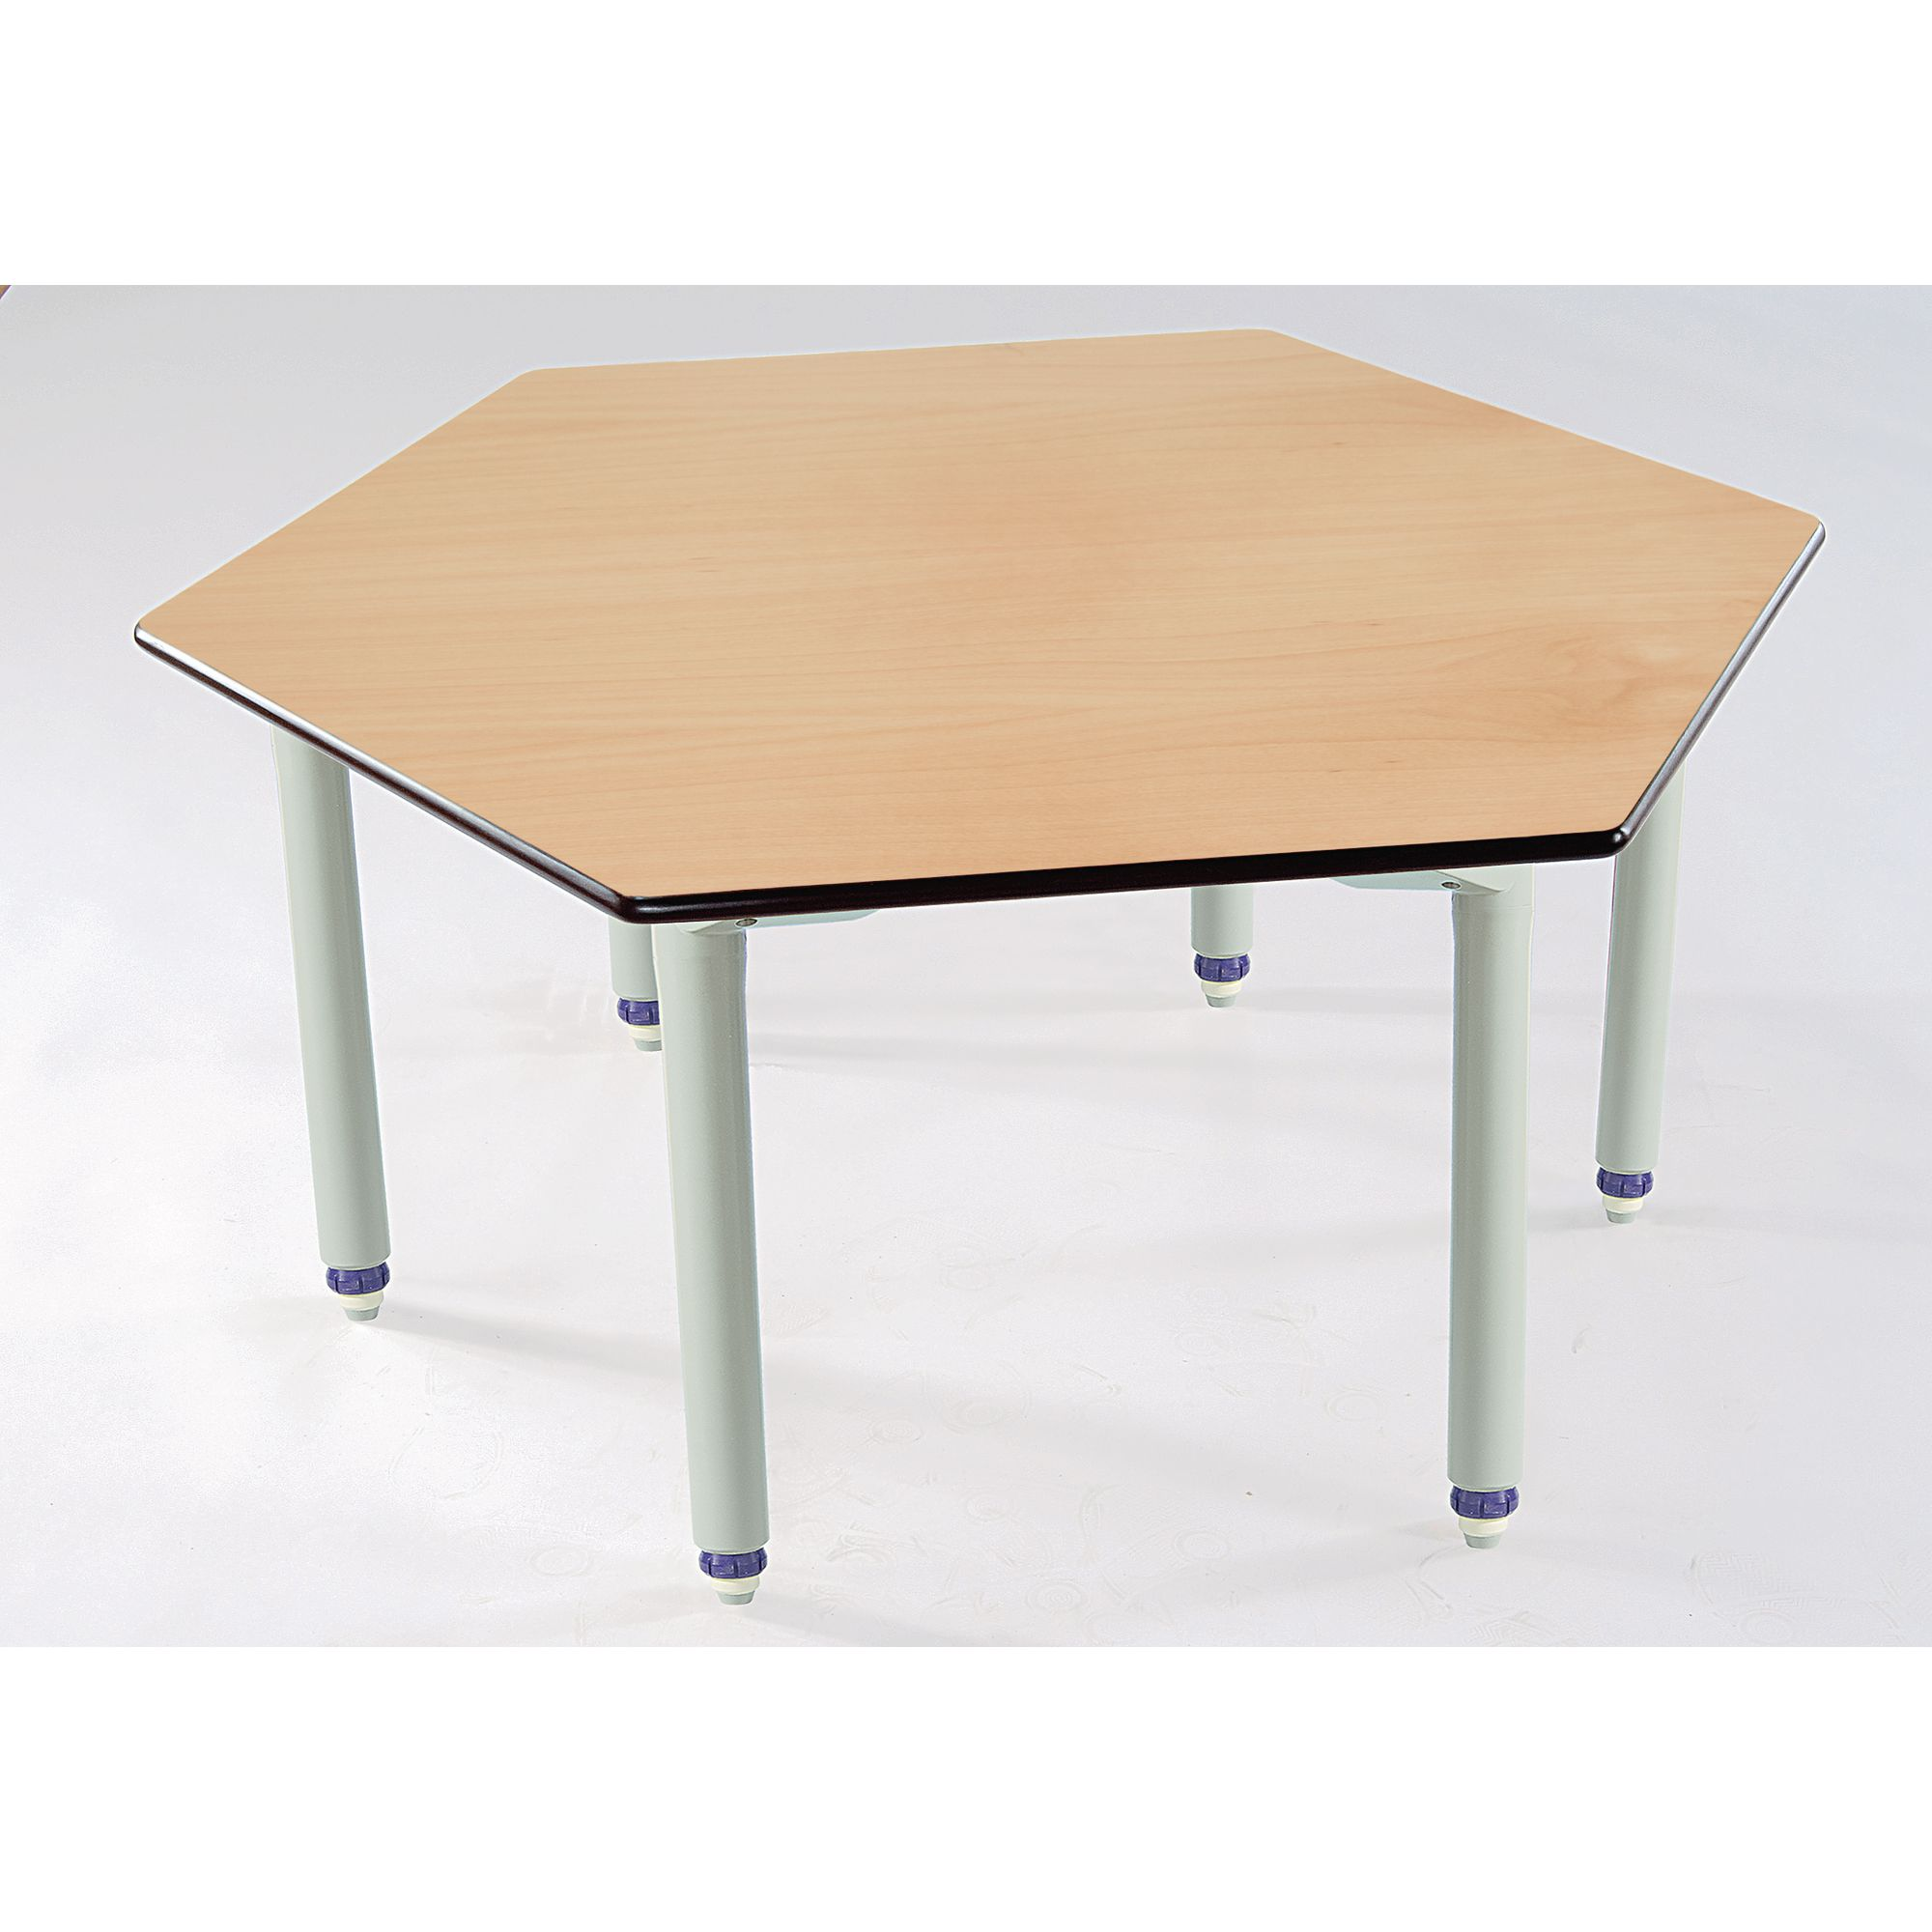 Table Polypropylène Galt Hexagonal Wood Polypropylene Classroom Table 1100 X 1100 X 405 To 640mm Beech